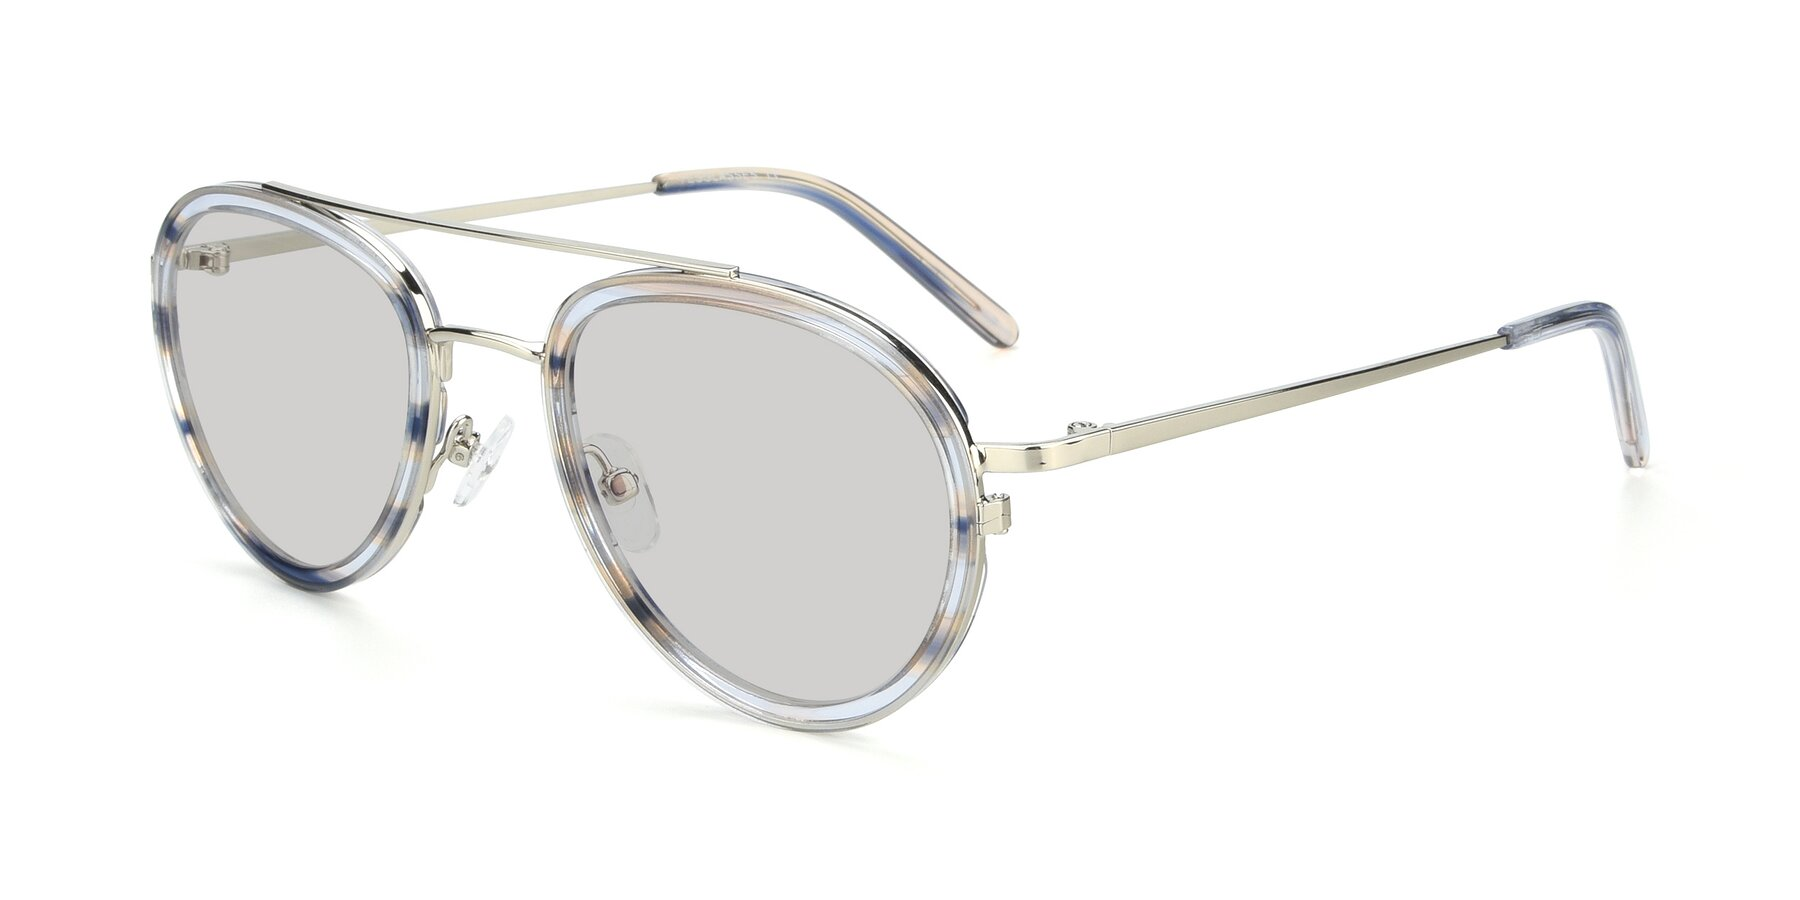 Angle of 9554 in Silver-Transparent with Light Gray Tinted Lenses